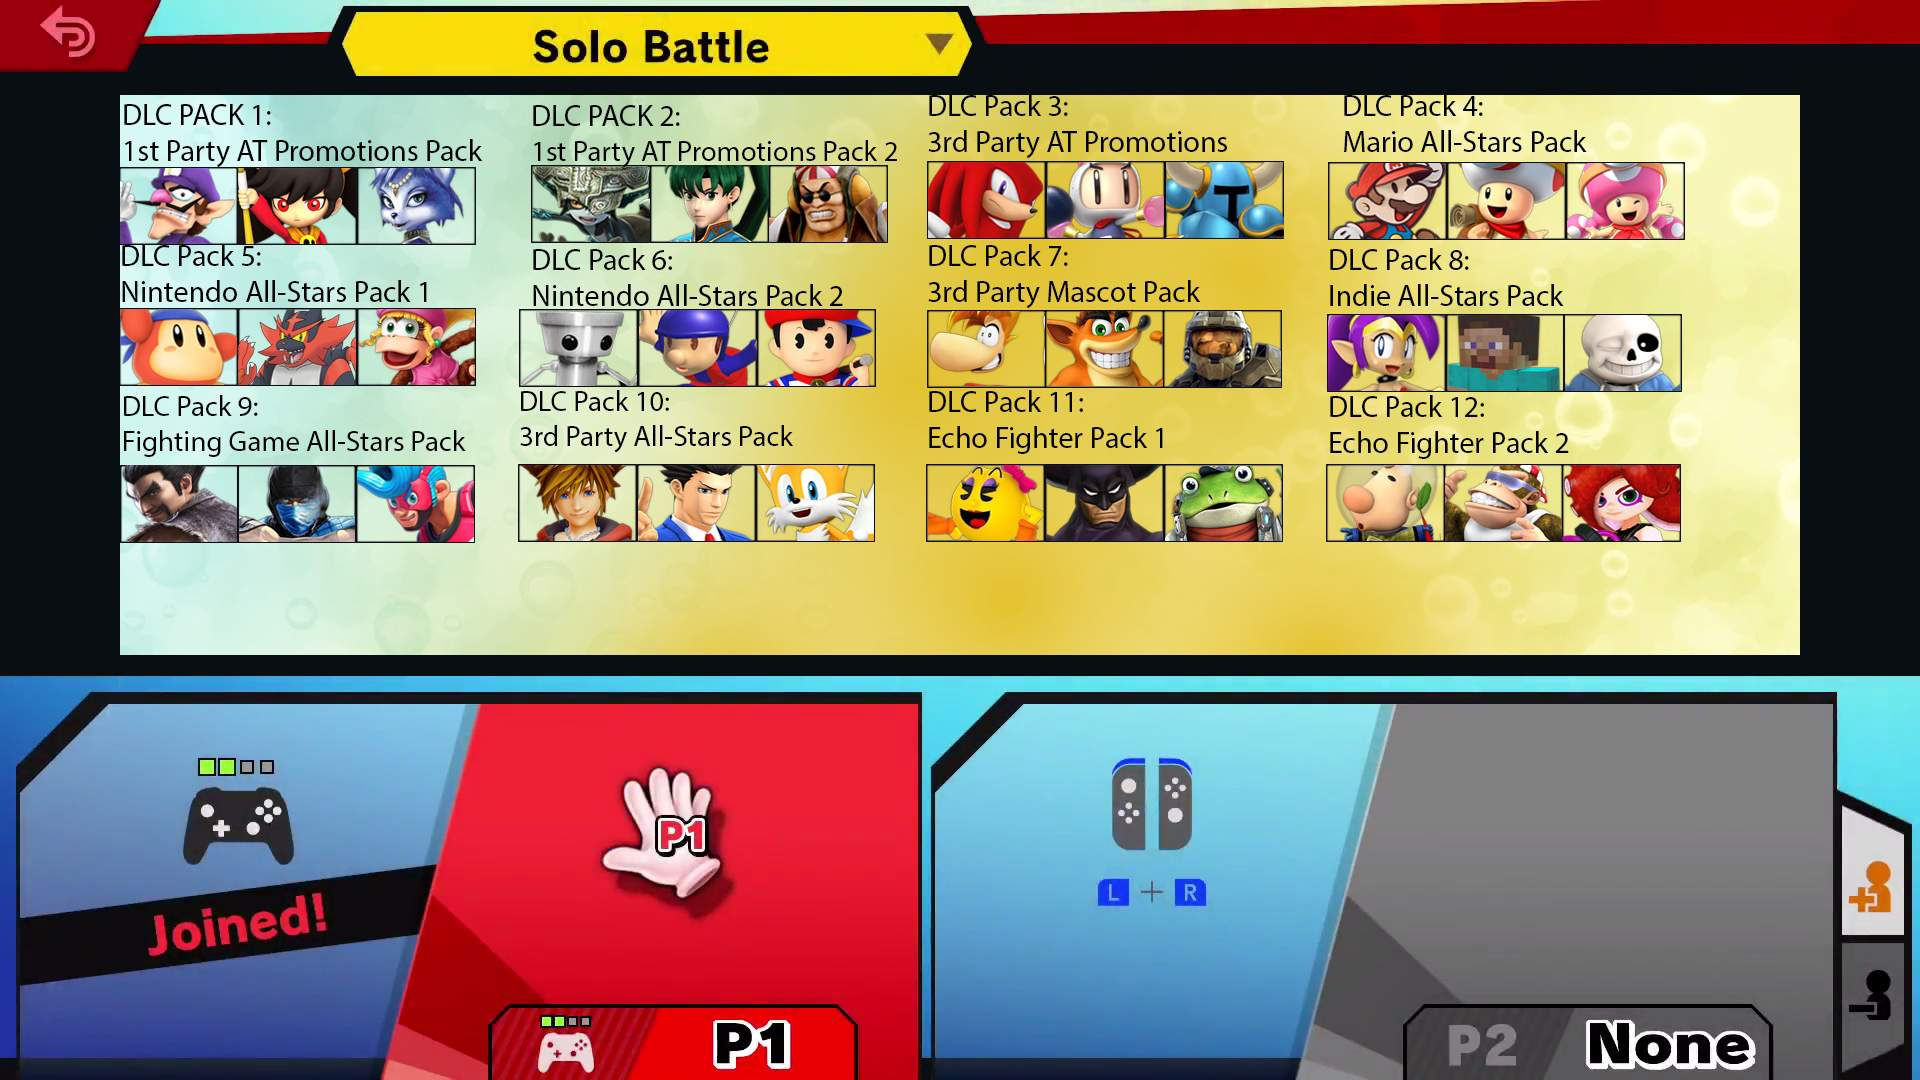 My DLC Pack Predictions Based on the Banner Leak (SPOILER